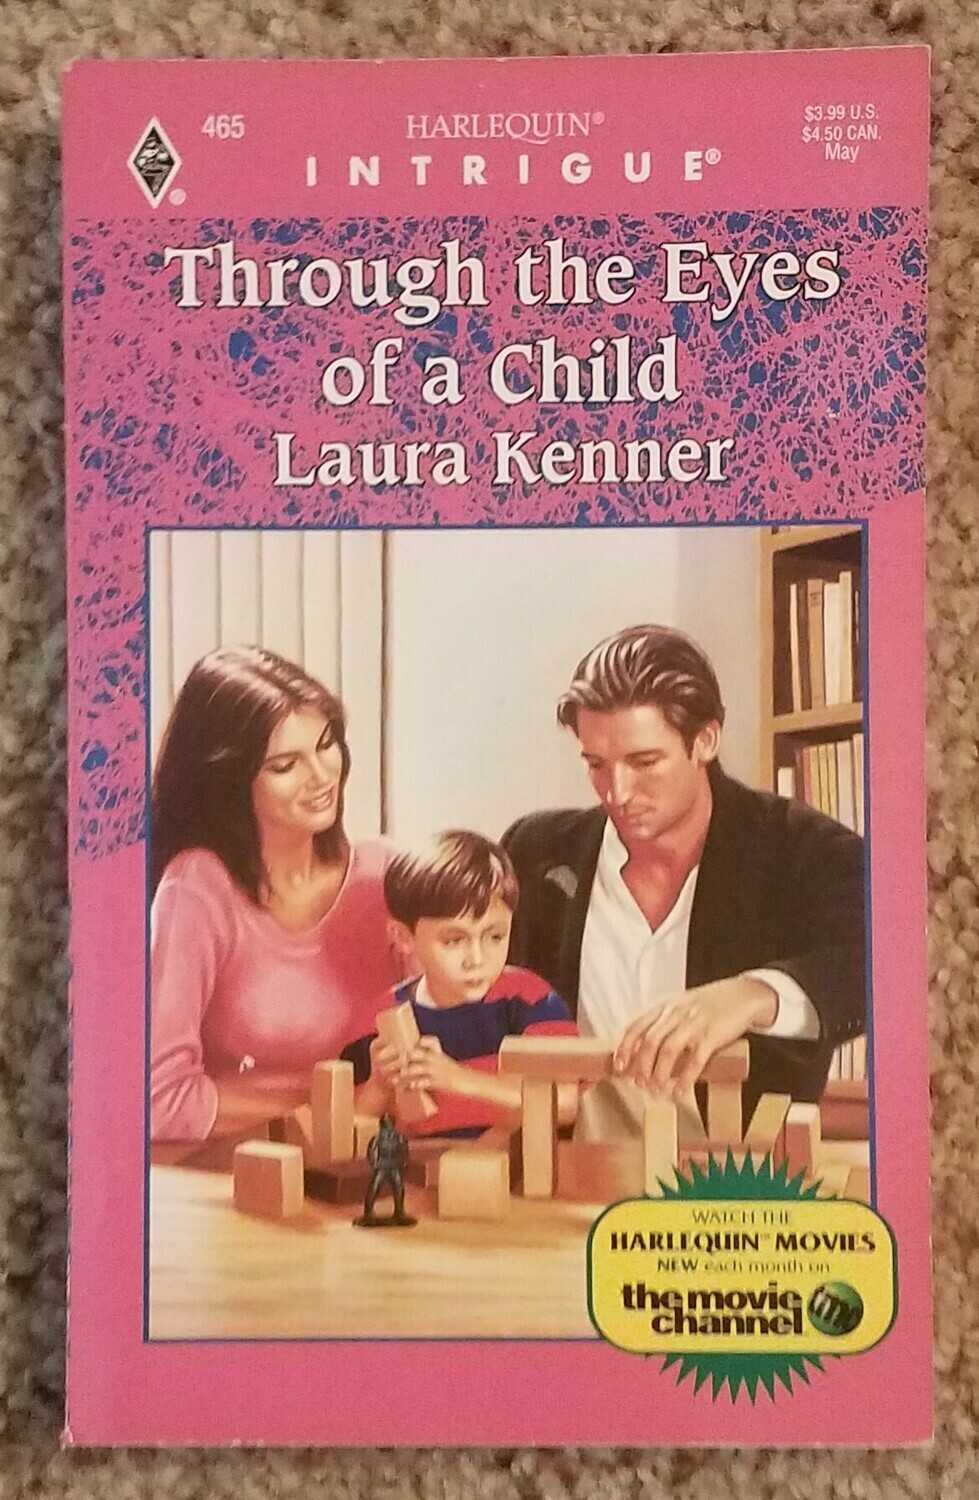 Through the Eyes of a Child by Laura Kenner